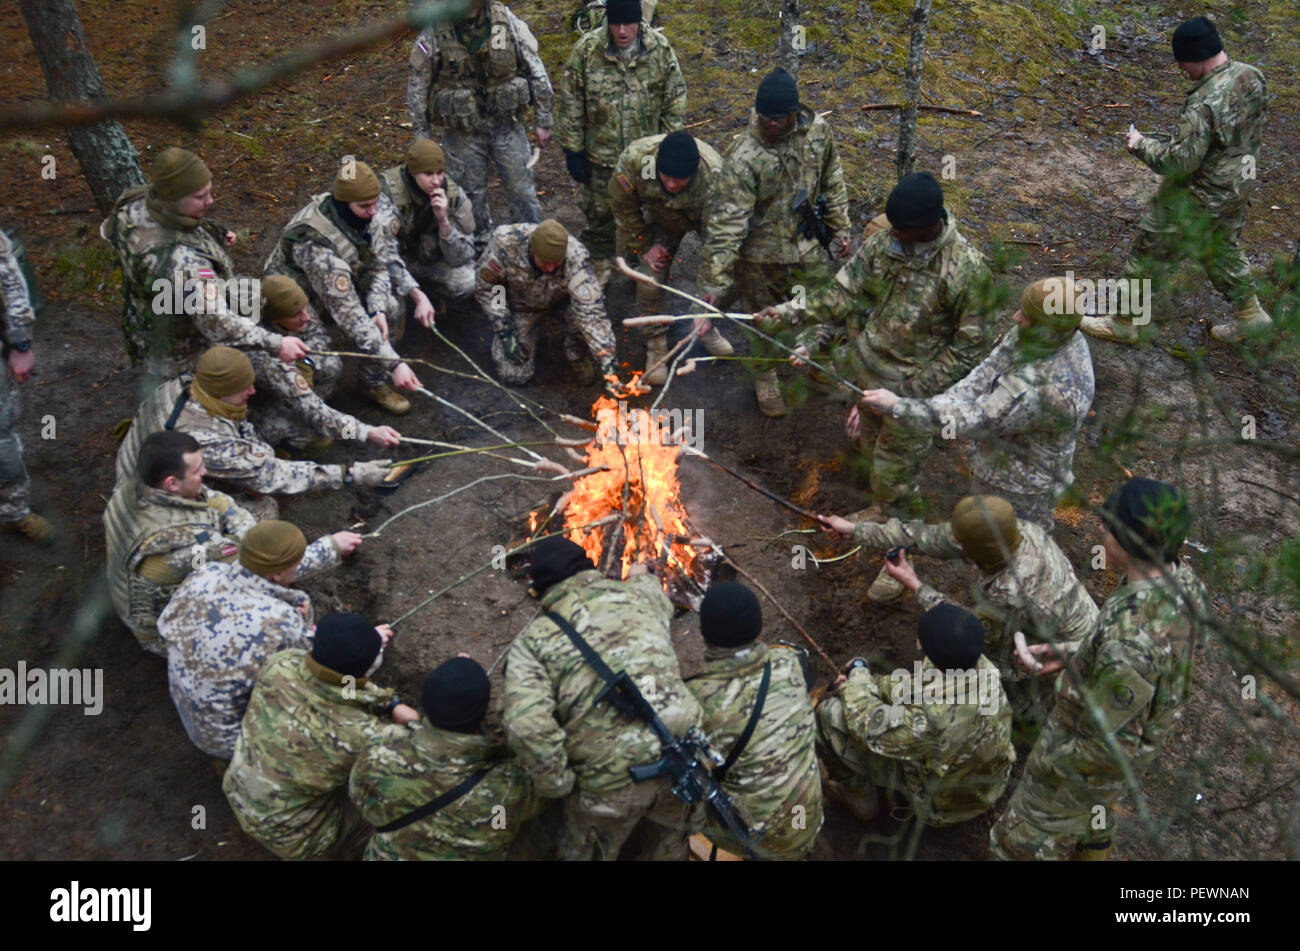 Latvian and U.S. Soldiers come together for a sausage roast after a full day's worth of field training, which the two forces were able to learn from each other, build interoperabity and build a stronger relationship during a field training exercise at Adazi Training Area in Latvia, Feb. 3, 2016. (Photo by U.S. Army Staff Sgt. Steven M. Colvin/Released) - Stock Image